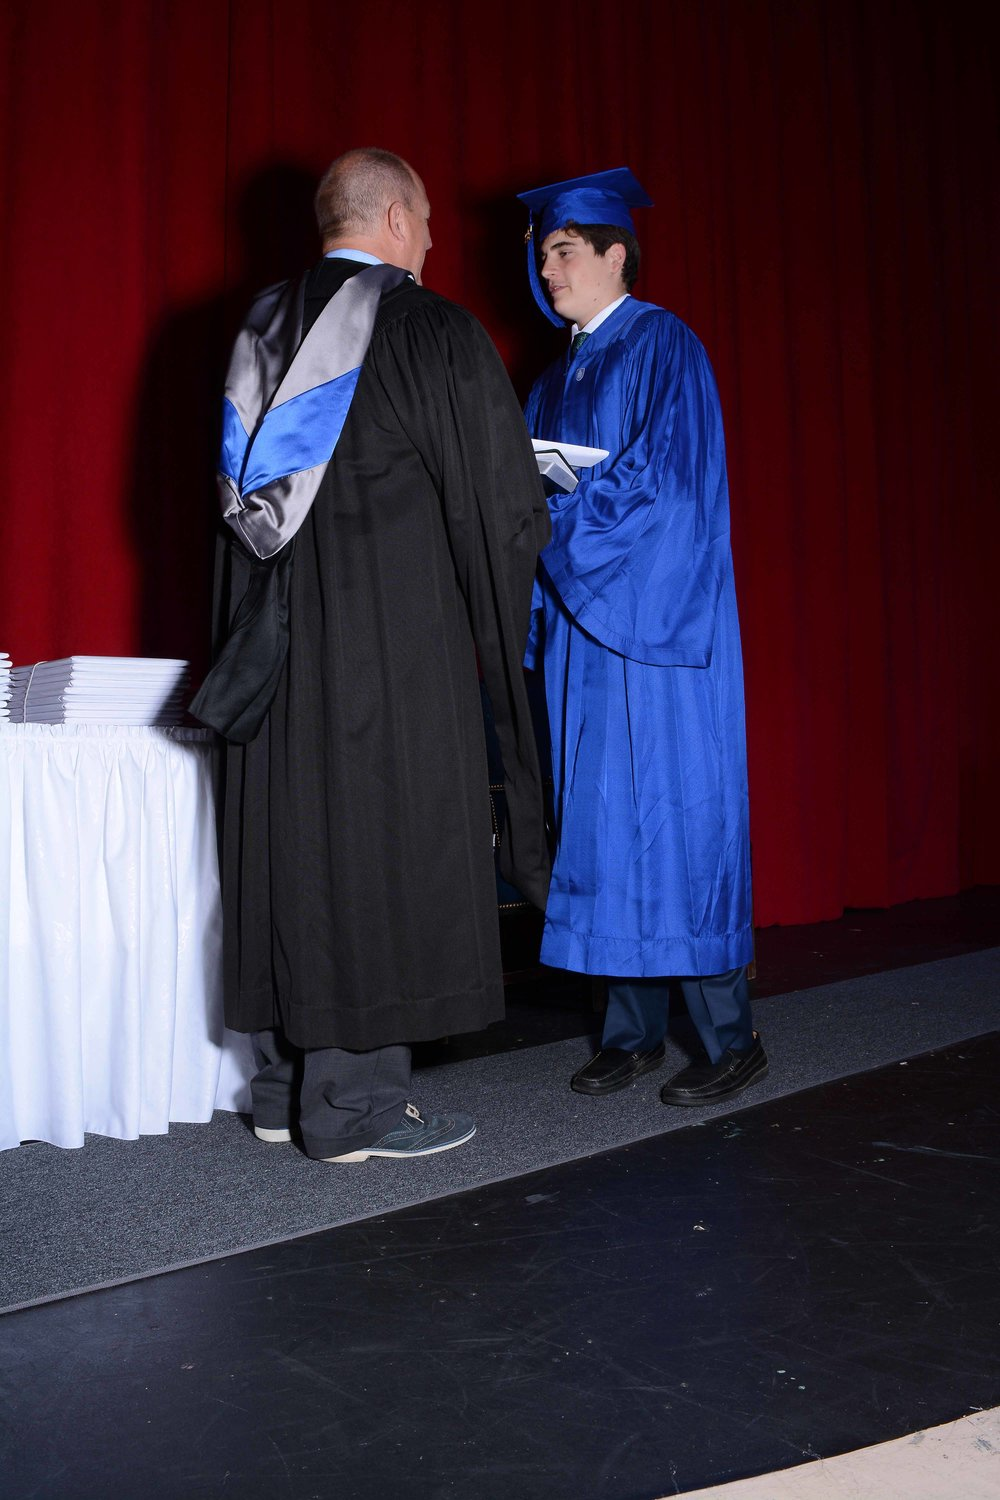 May14 Commencement08.jpg